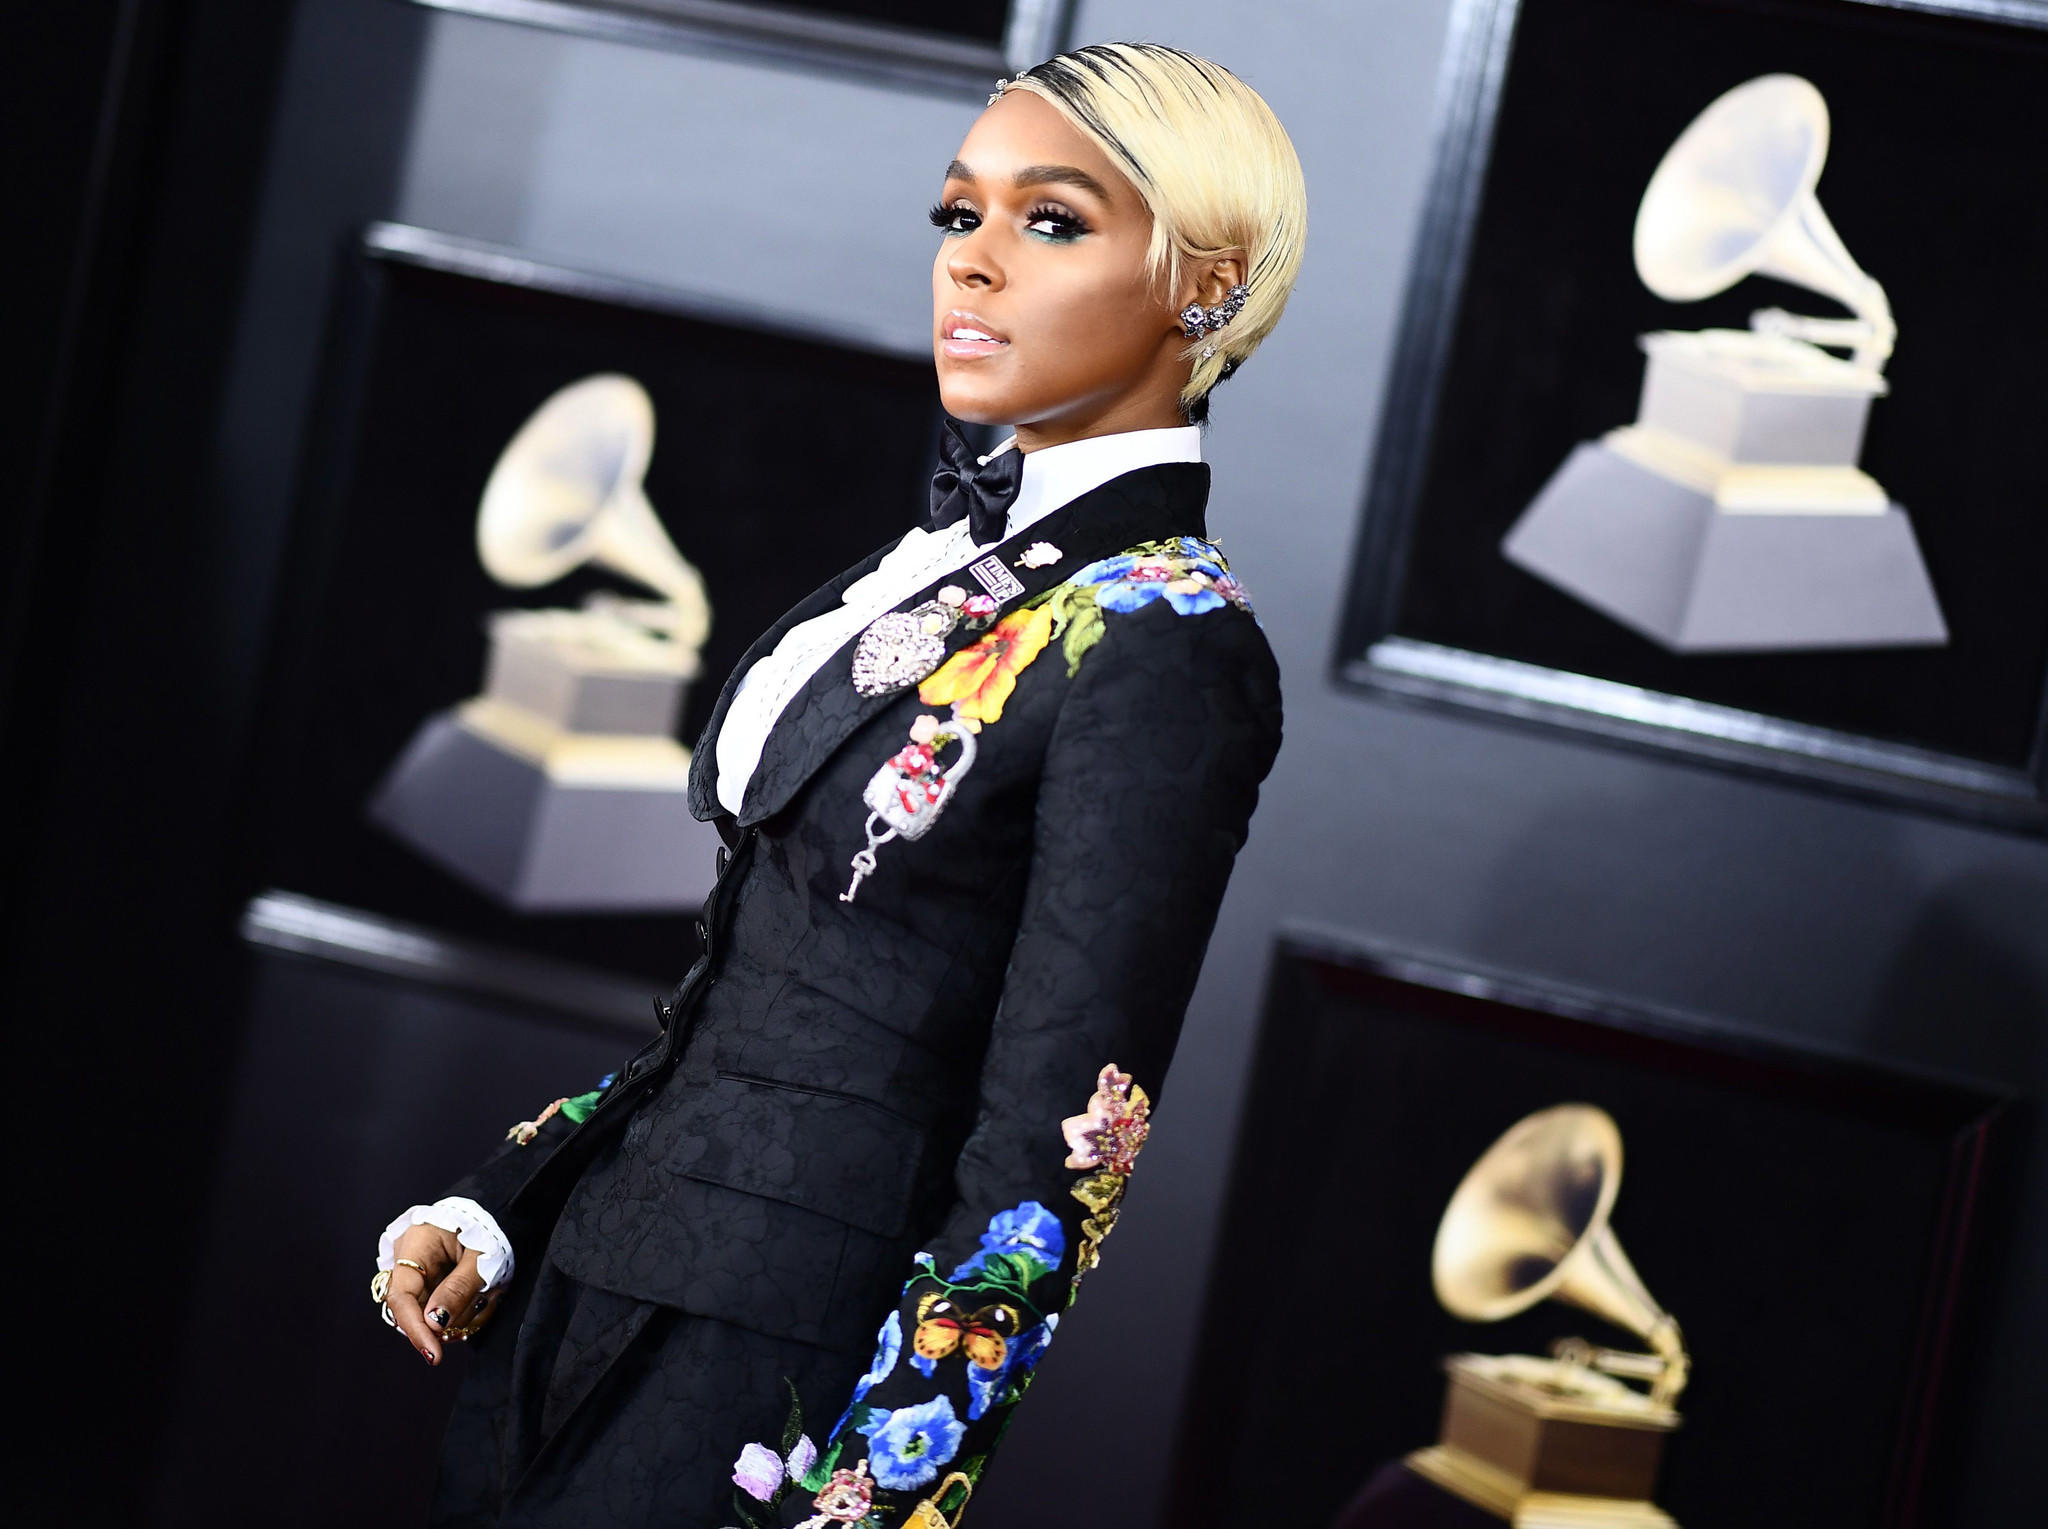 la-ig-grammys-best-worst-looks-photos-2018-009.jpg